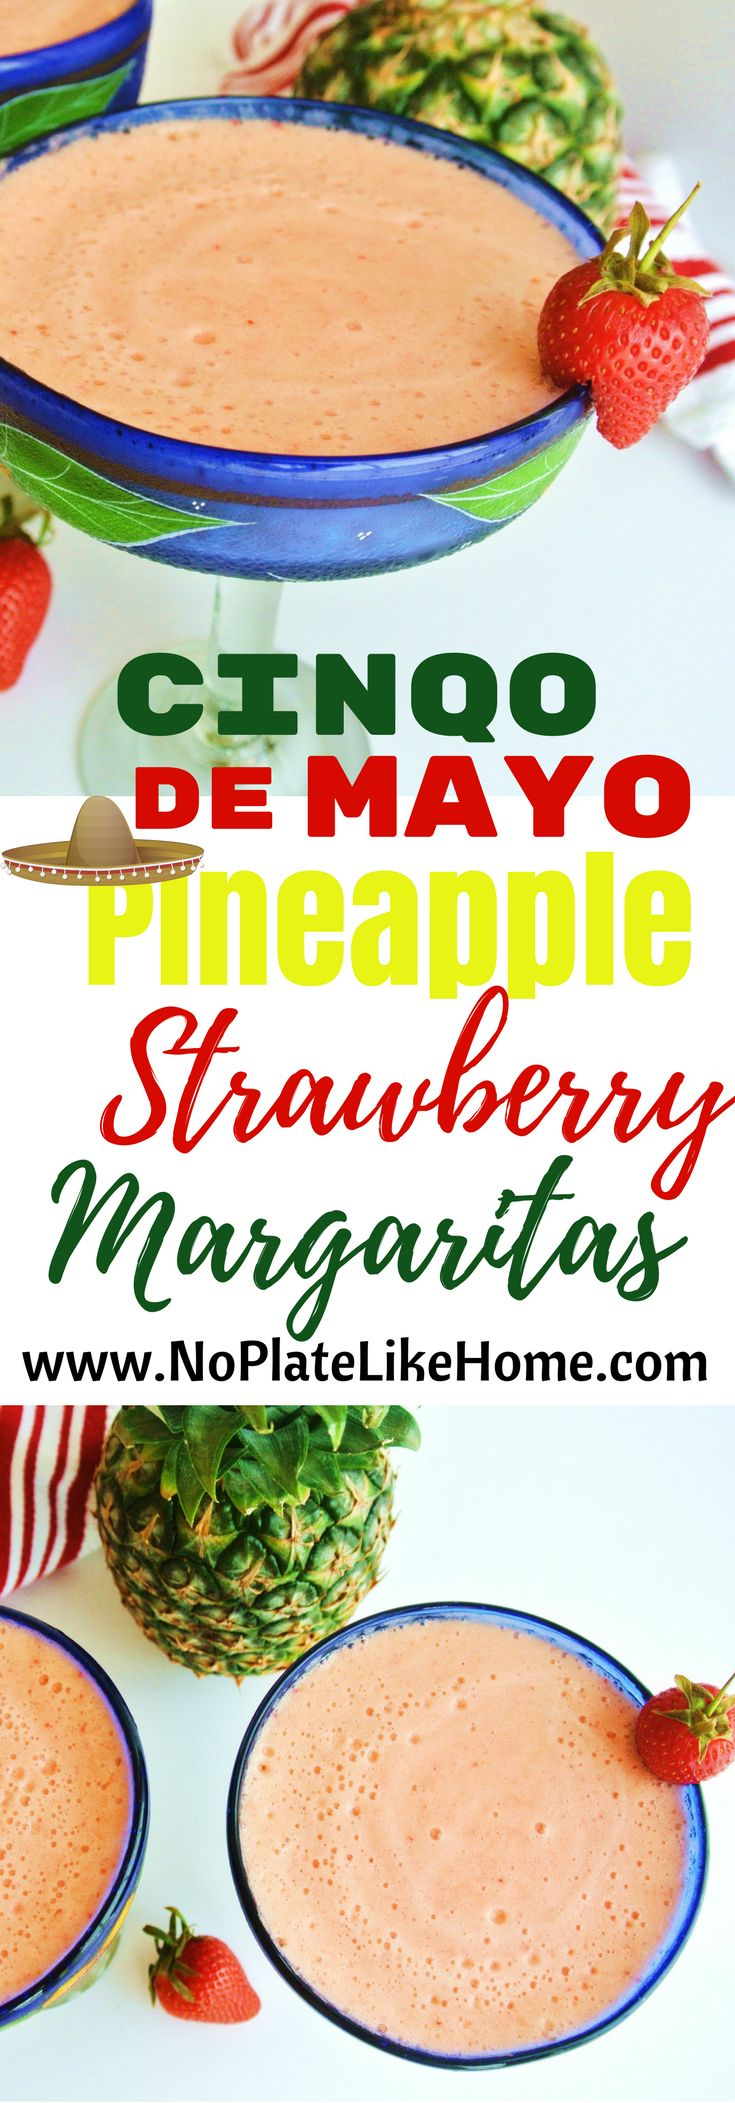 Get your Cinqo de Mayo drink recipes ready! This tasty, frothy frozen margarita is made with fresh pineapple and strawberries, Tequila and Triple Sec, orange juice, sugar and ice cubes using a blender. They're refreshing cocktails perfect for parties! Turn your fruit salad leftovers into fresh Margaritas with this easy recipe and skip the frozen syrup mixers! Pin for later.